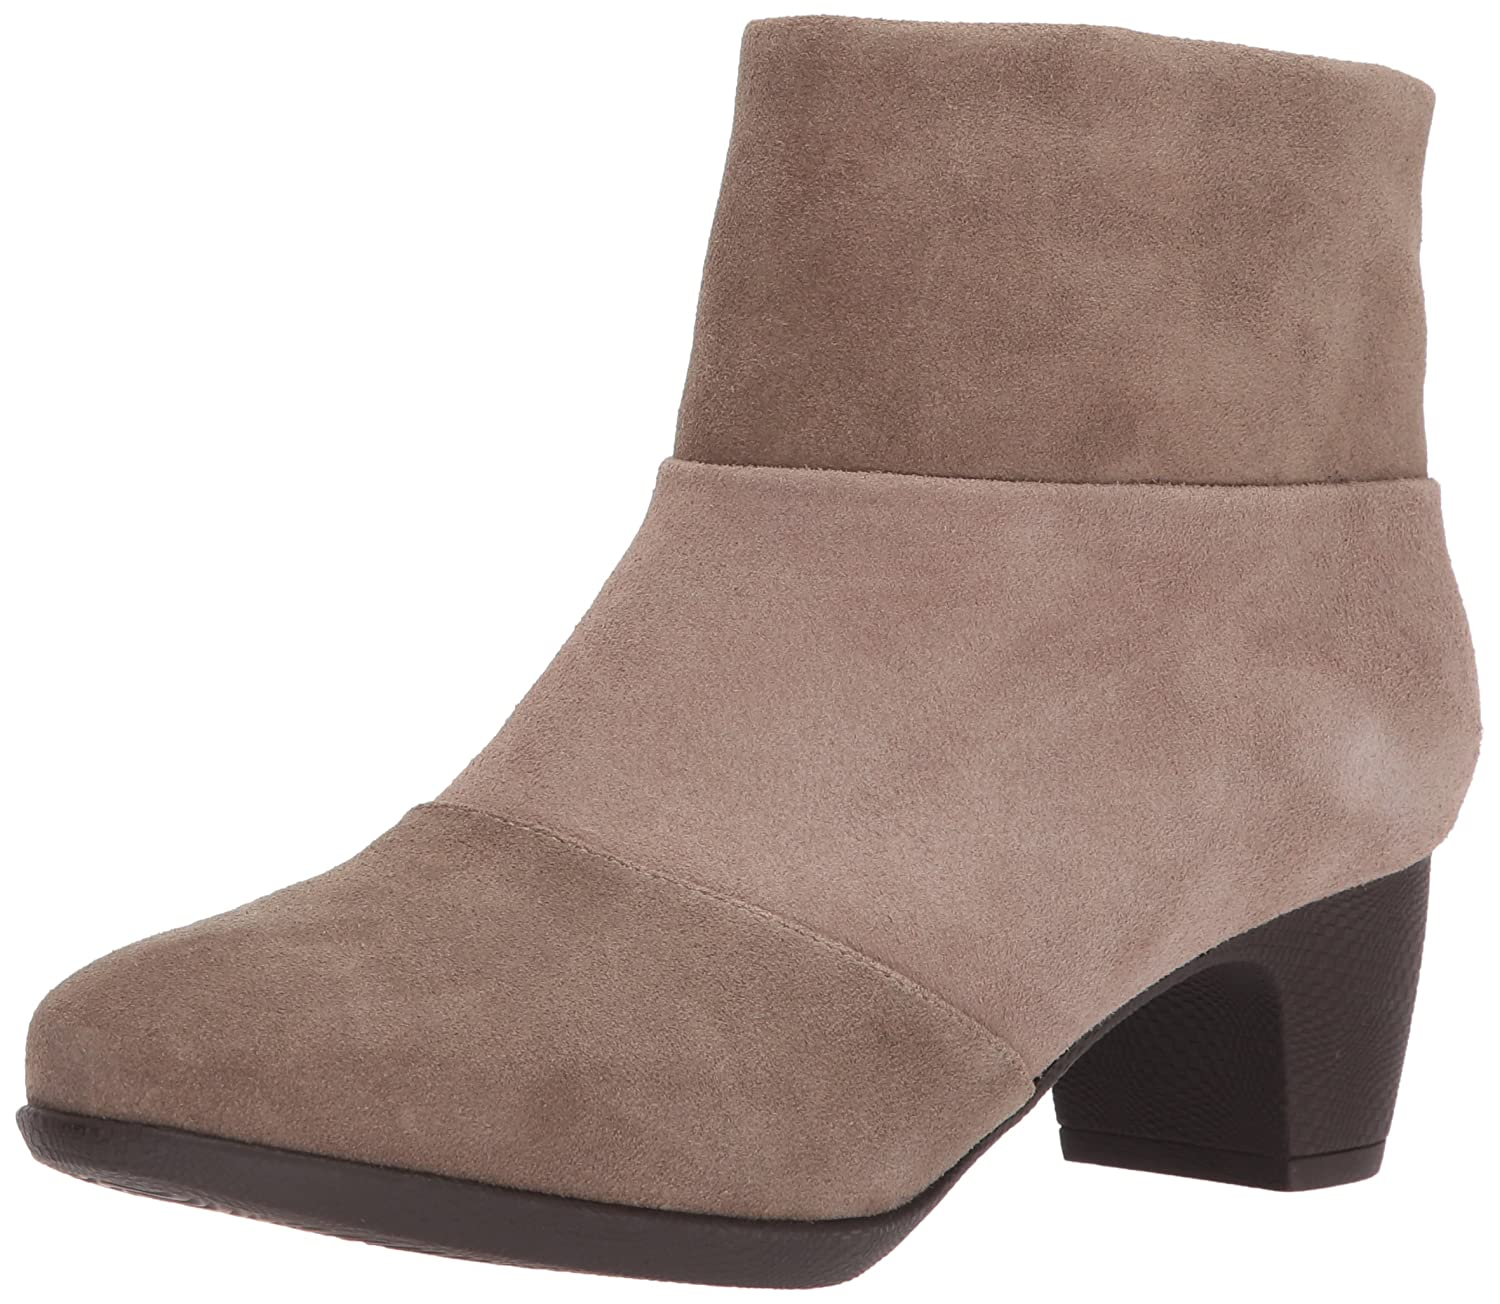 SoftWalk Women's Inspire Ankle Bootie B01NALL4OD 7.5 W US|Dark Taupe